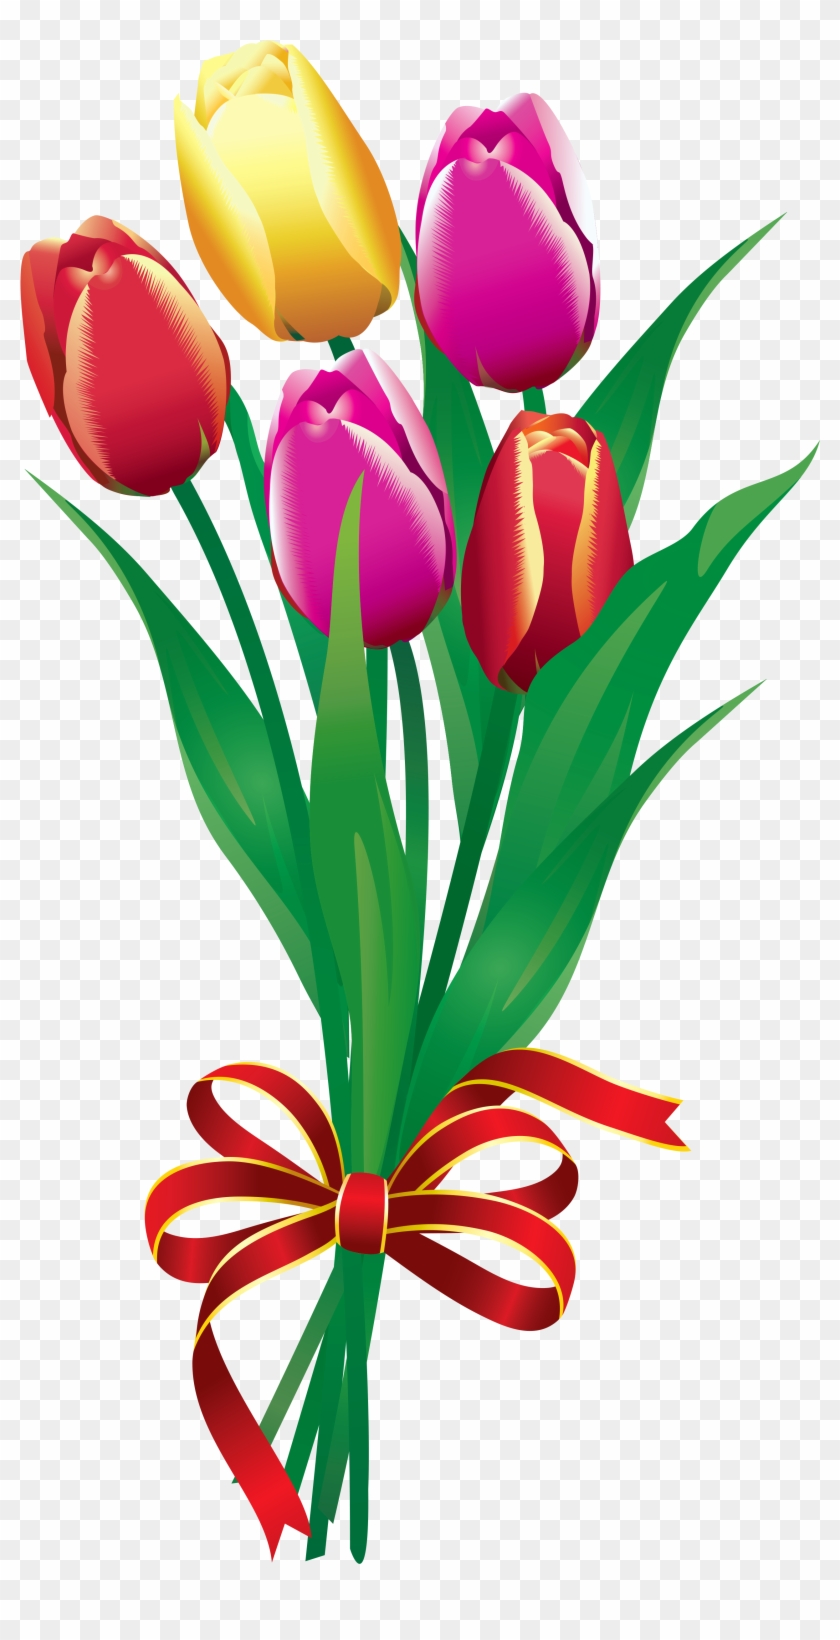 Tulip Bouquet Clipart - Flower Bouquet Clipart Png - Free ...